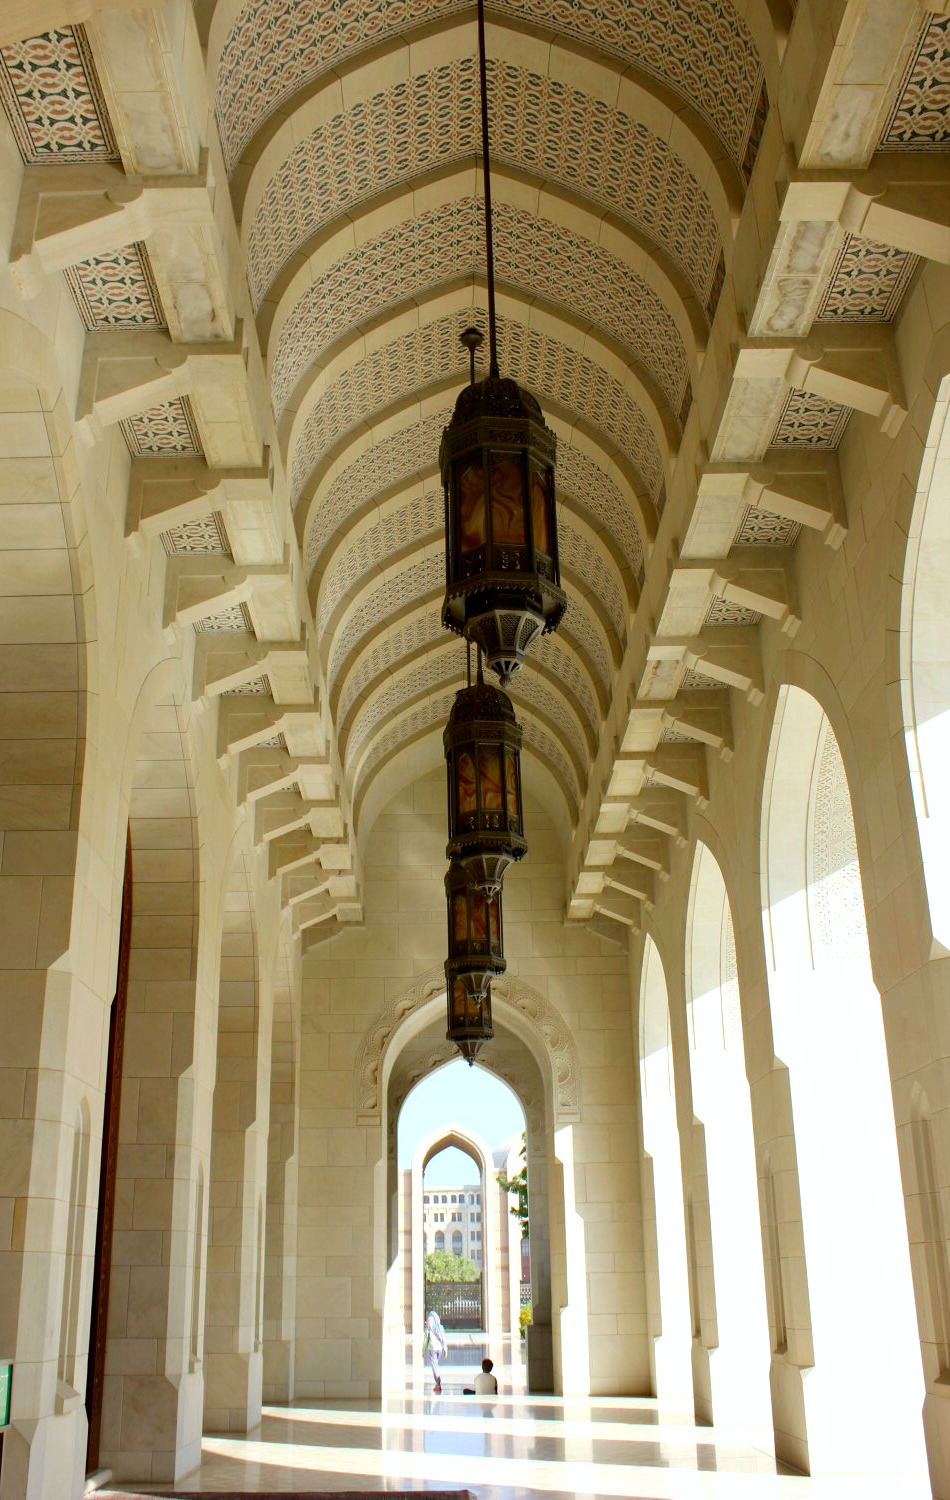 Light streams through archways along a covered walkway to another arch in the Sultan Qaboos Grand Mosque in Muscat Oman - the beautiful architecture is one of my nine reasons to visit Oman with kids